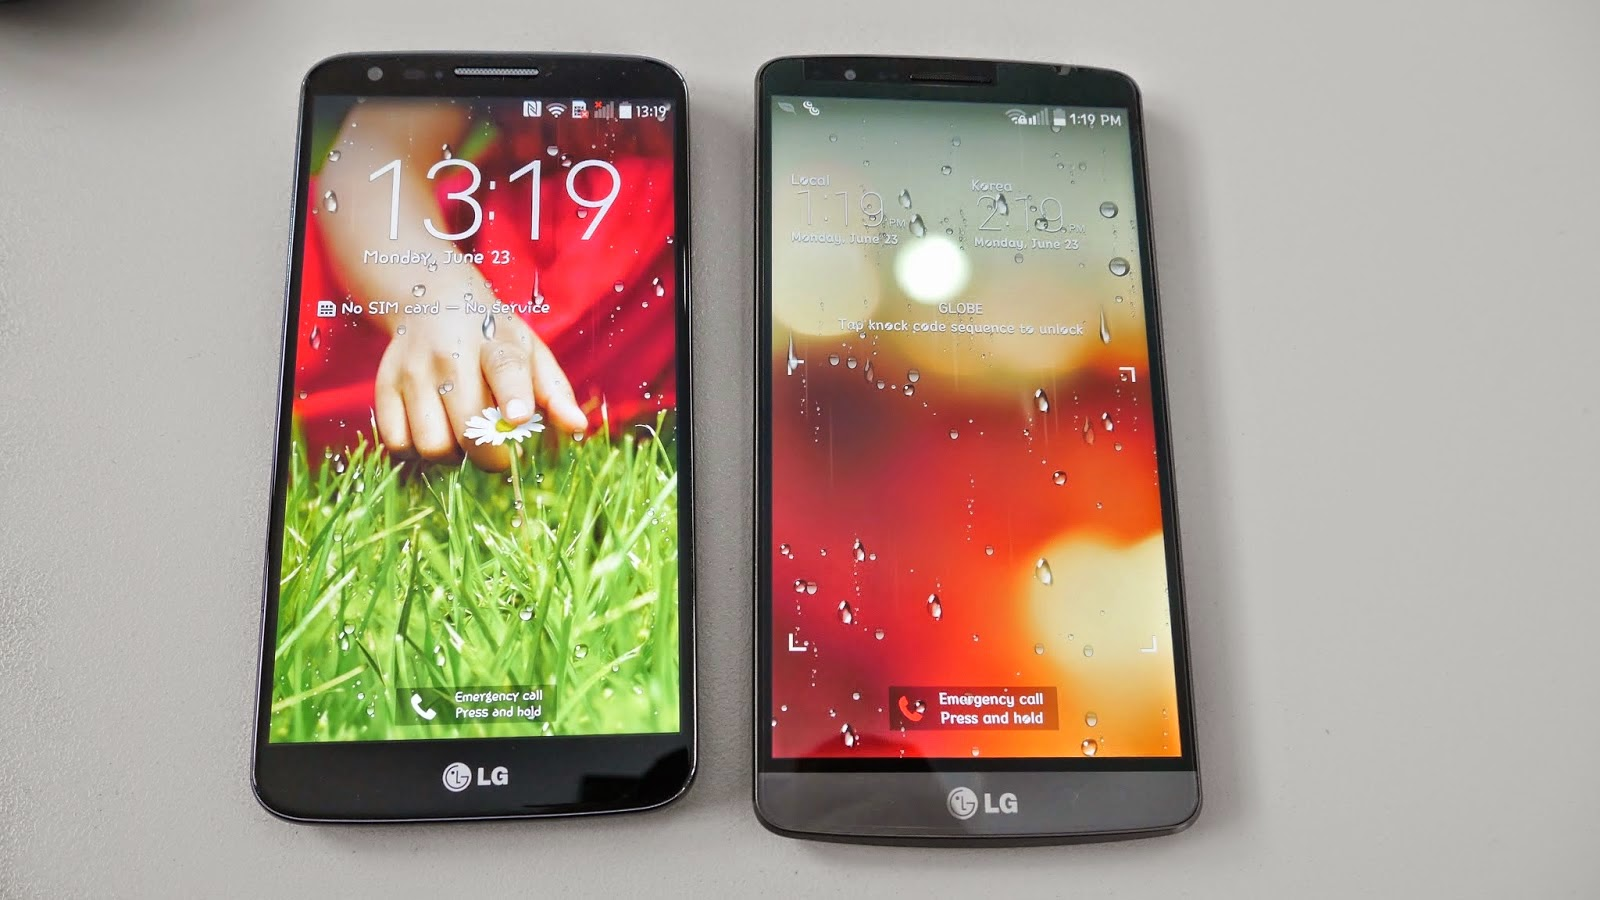 LG G2 G3 Gets Android Lollipop Update Today